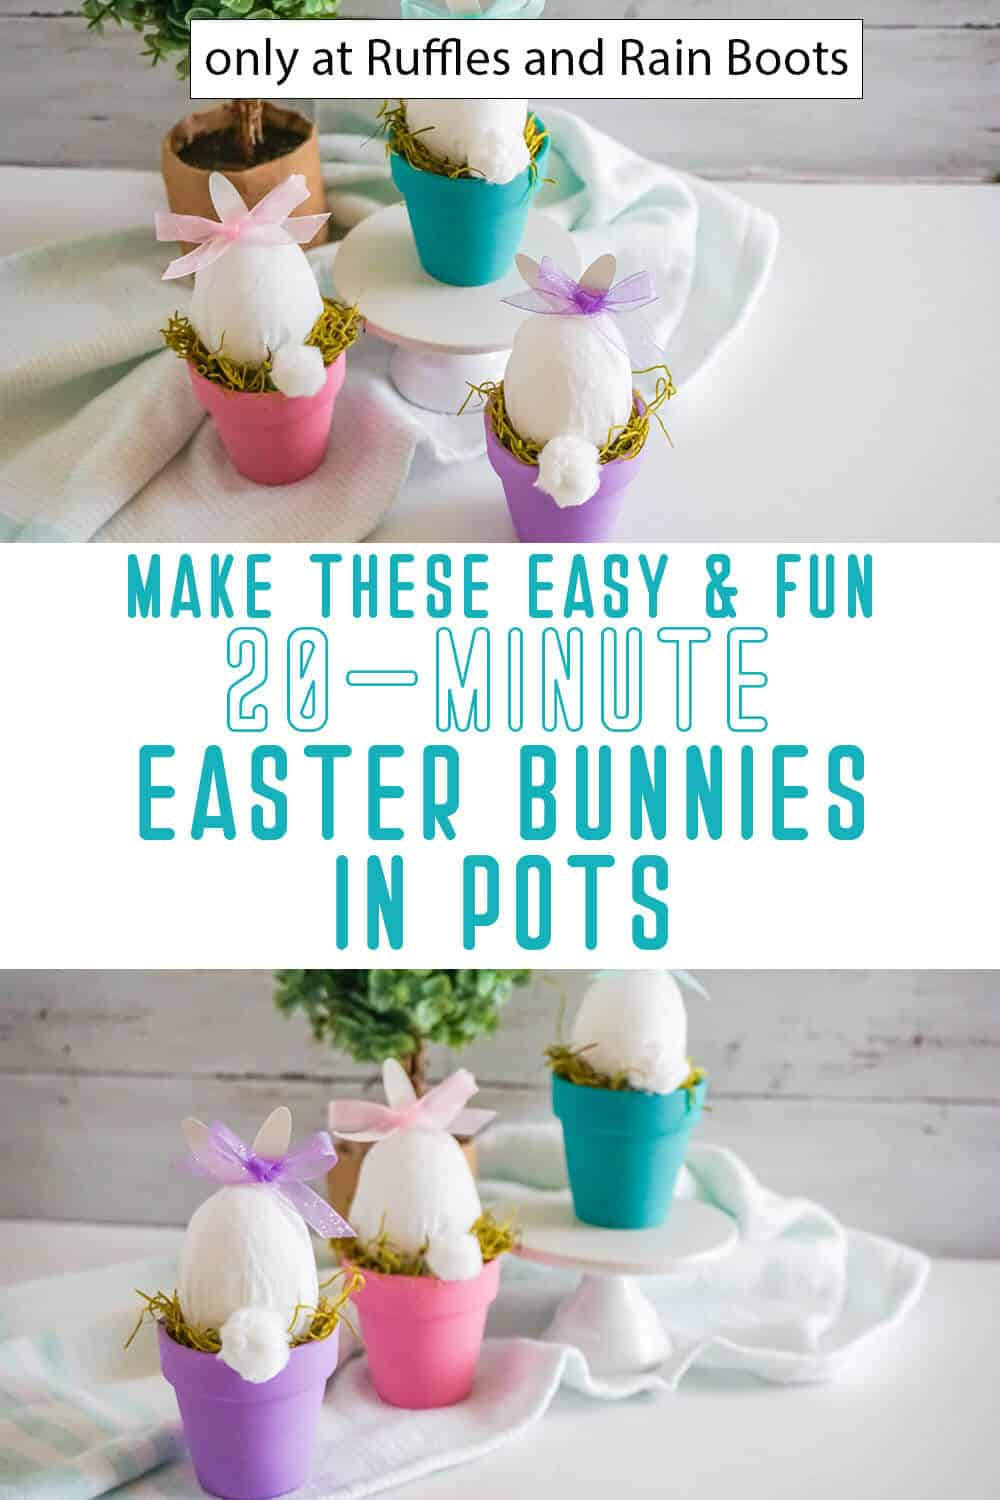 photo collage of bunnies in a pot easter craft with text which reads make these easy & fun 20-minute easter bunnies in pots